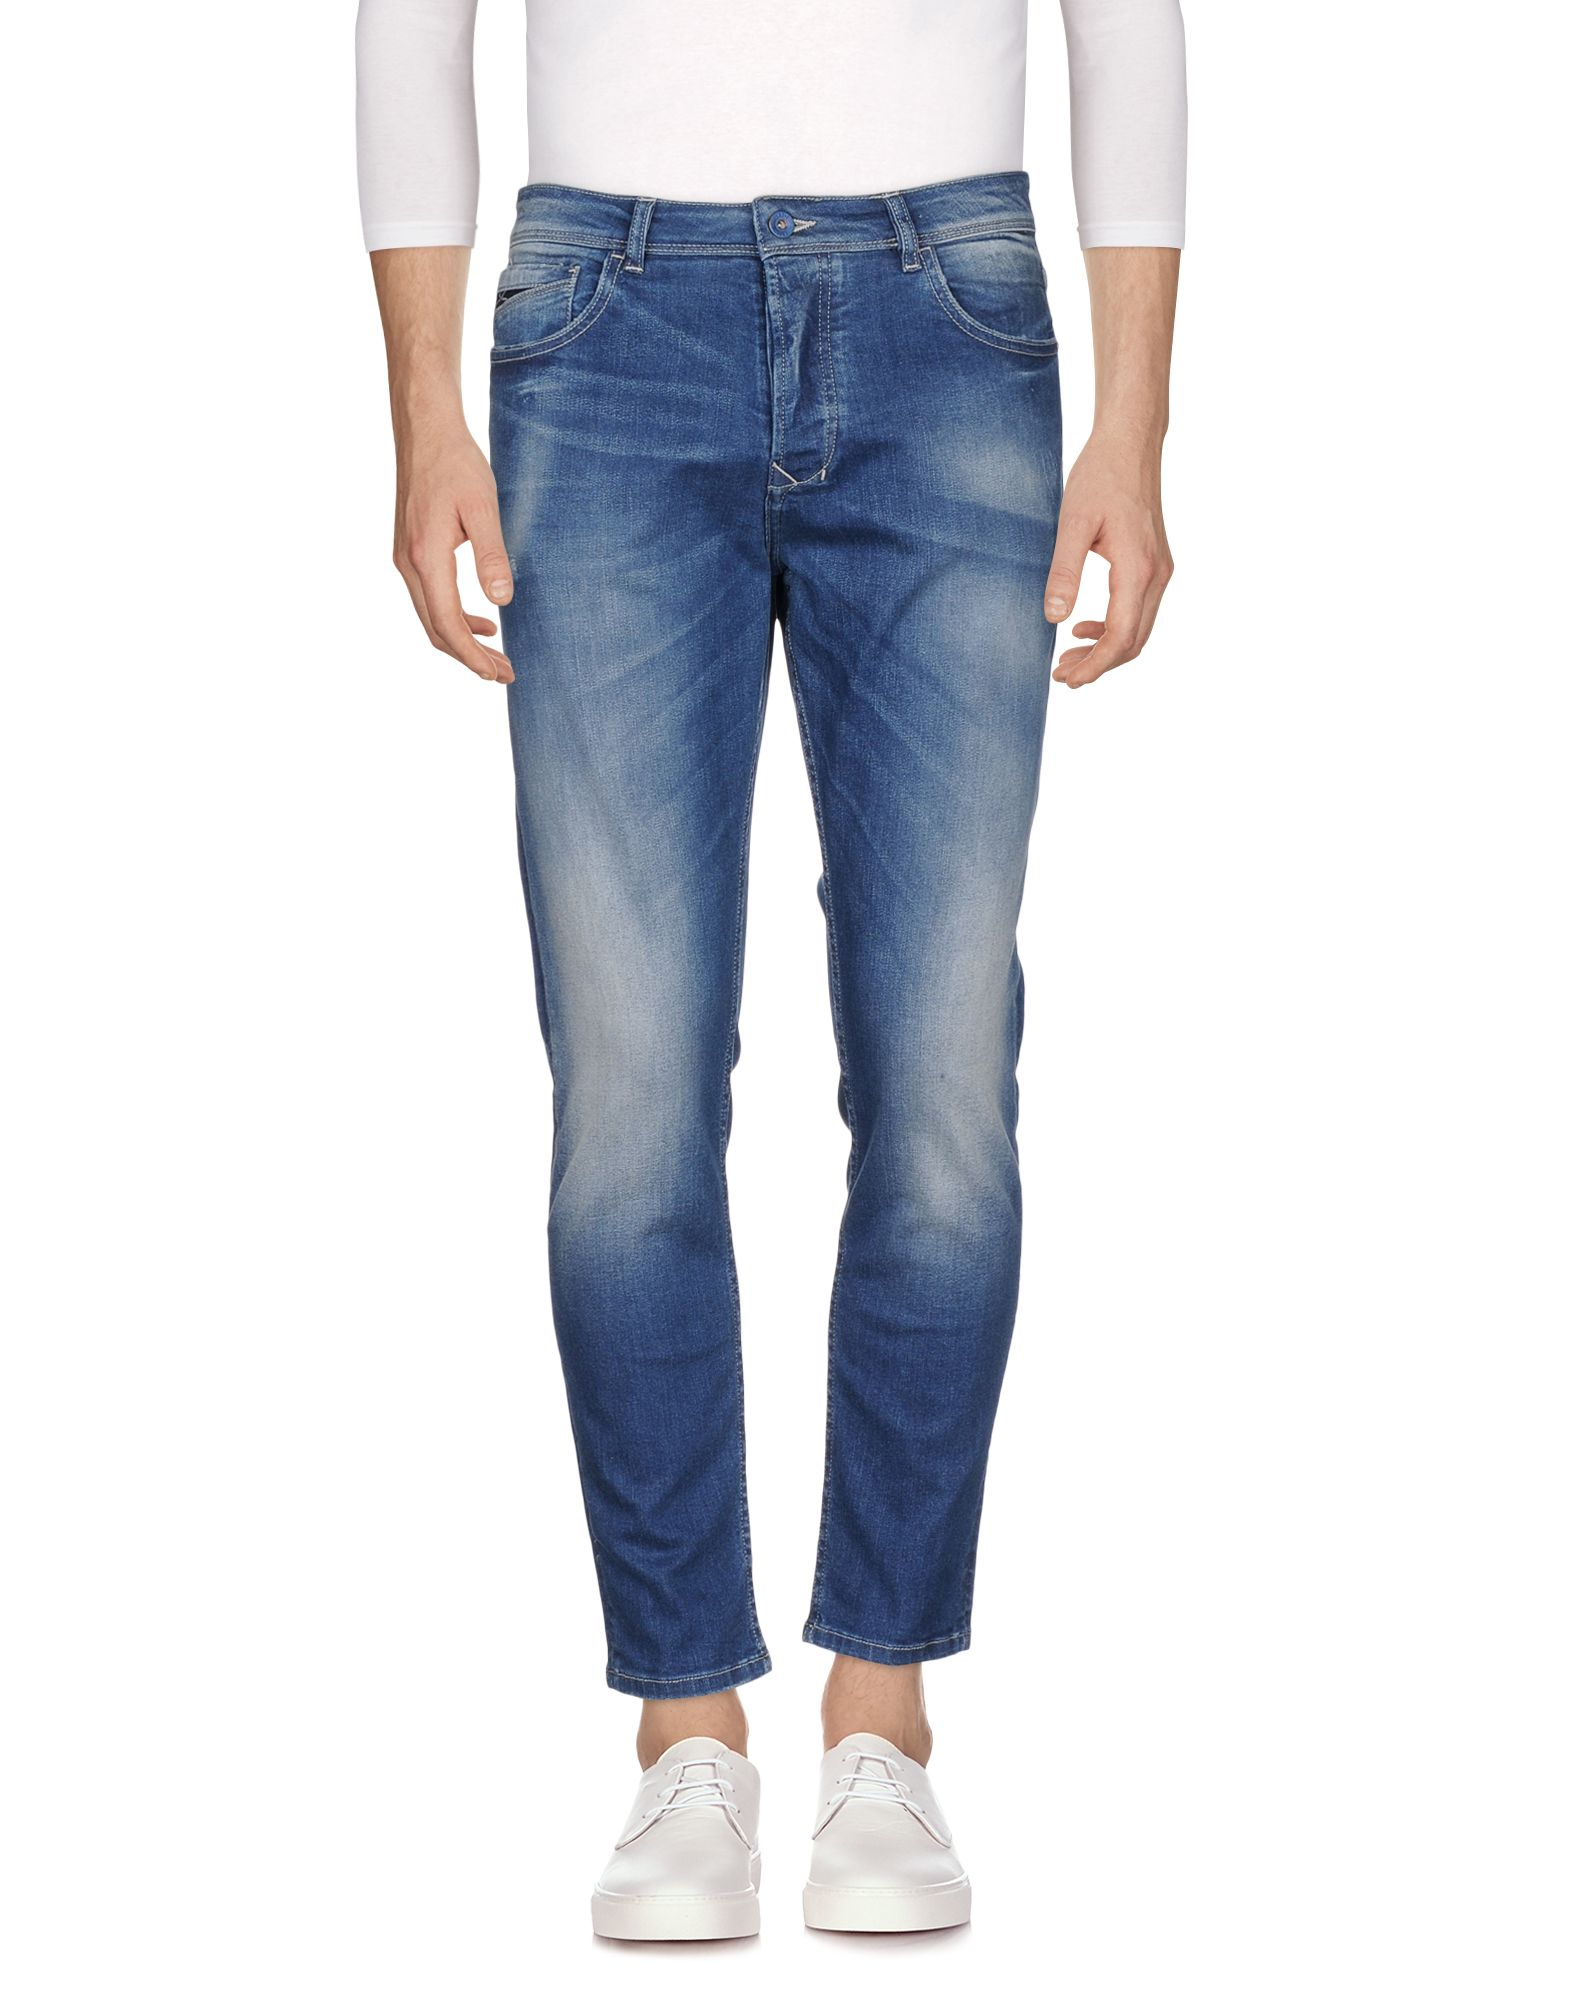 Pantaloni Jeans Jeans Jeans Yes Zee By Essenza Uomo - 42659383RM 7d51ca